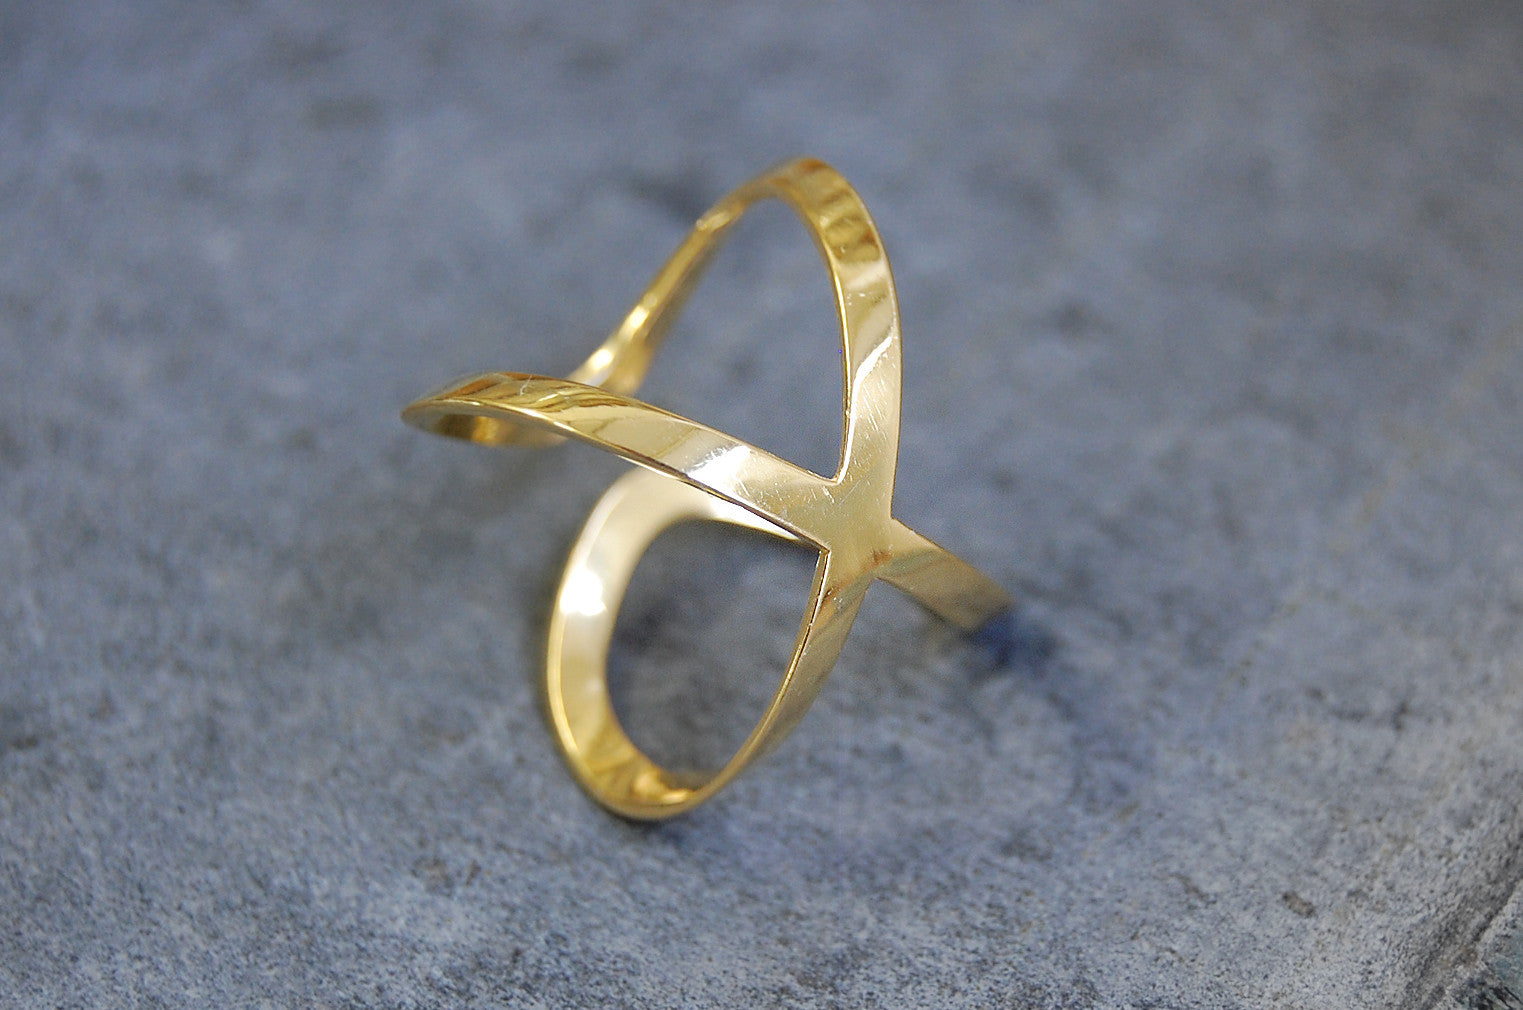 """ Equis "" ring 925 silver - 24 k goldplated"